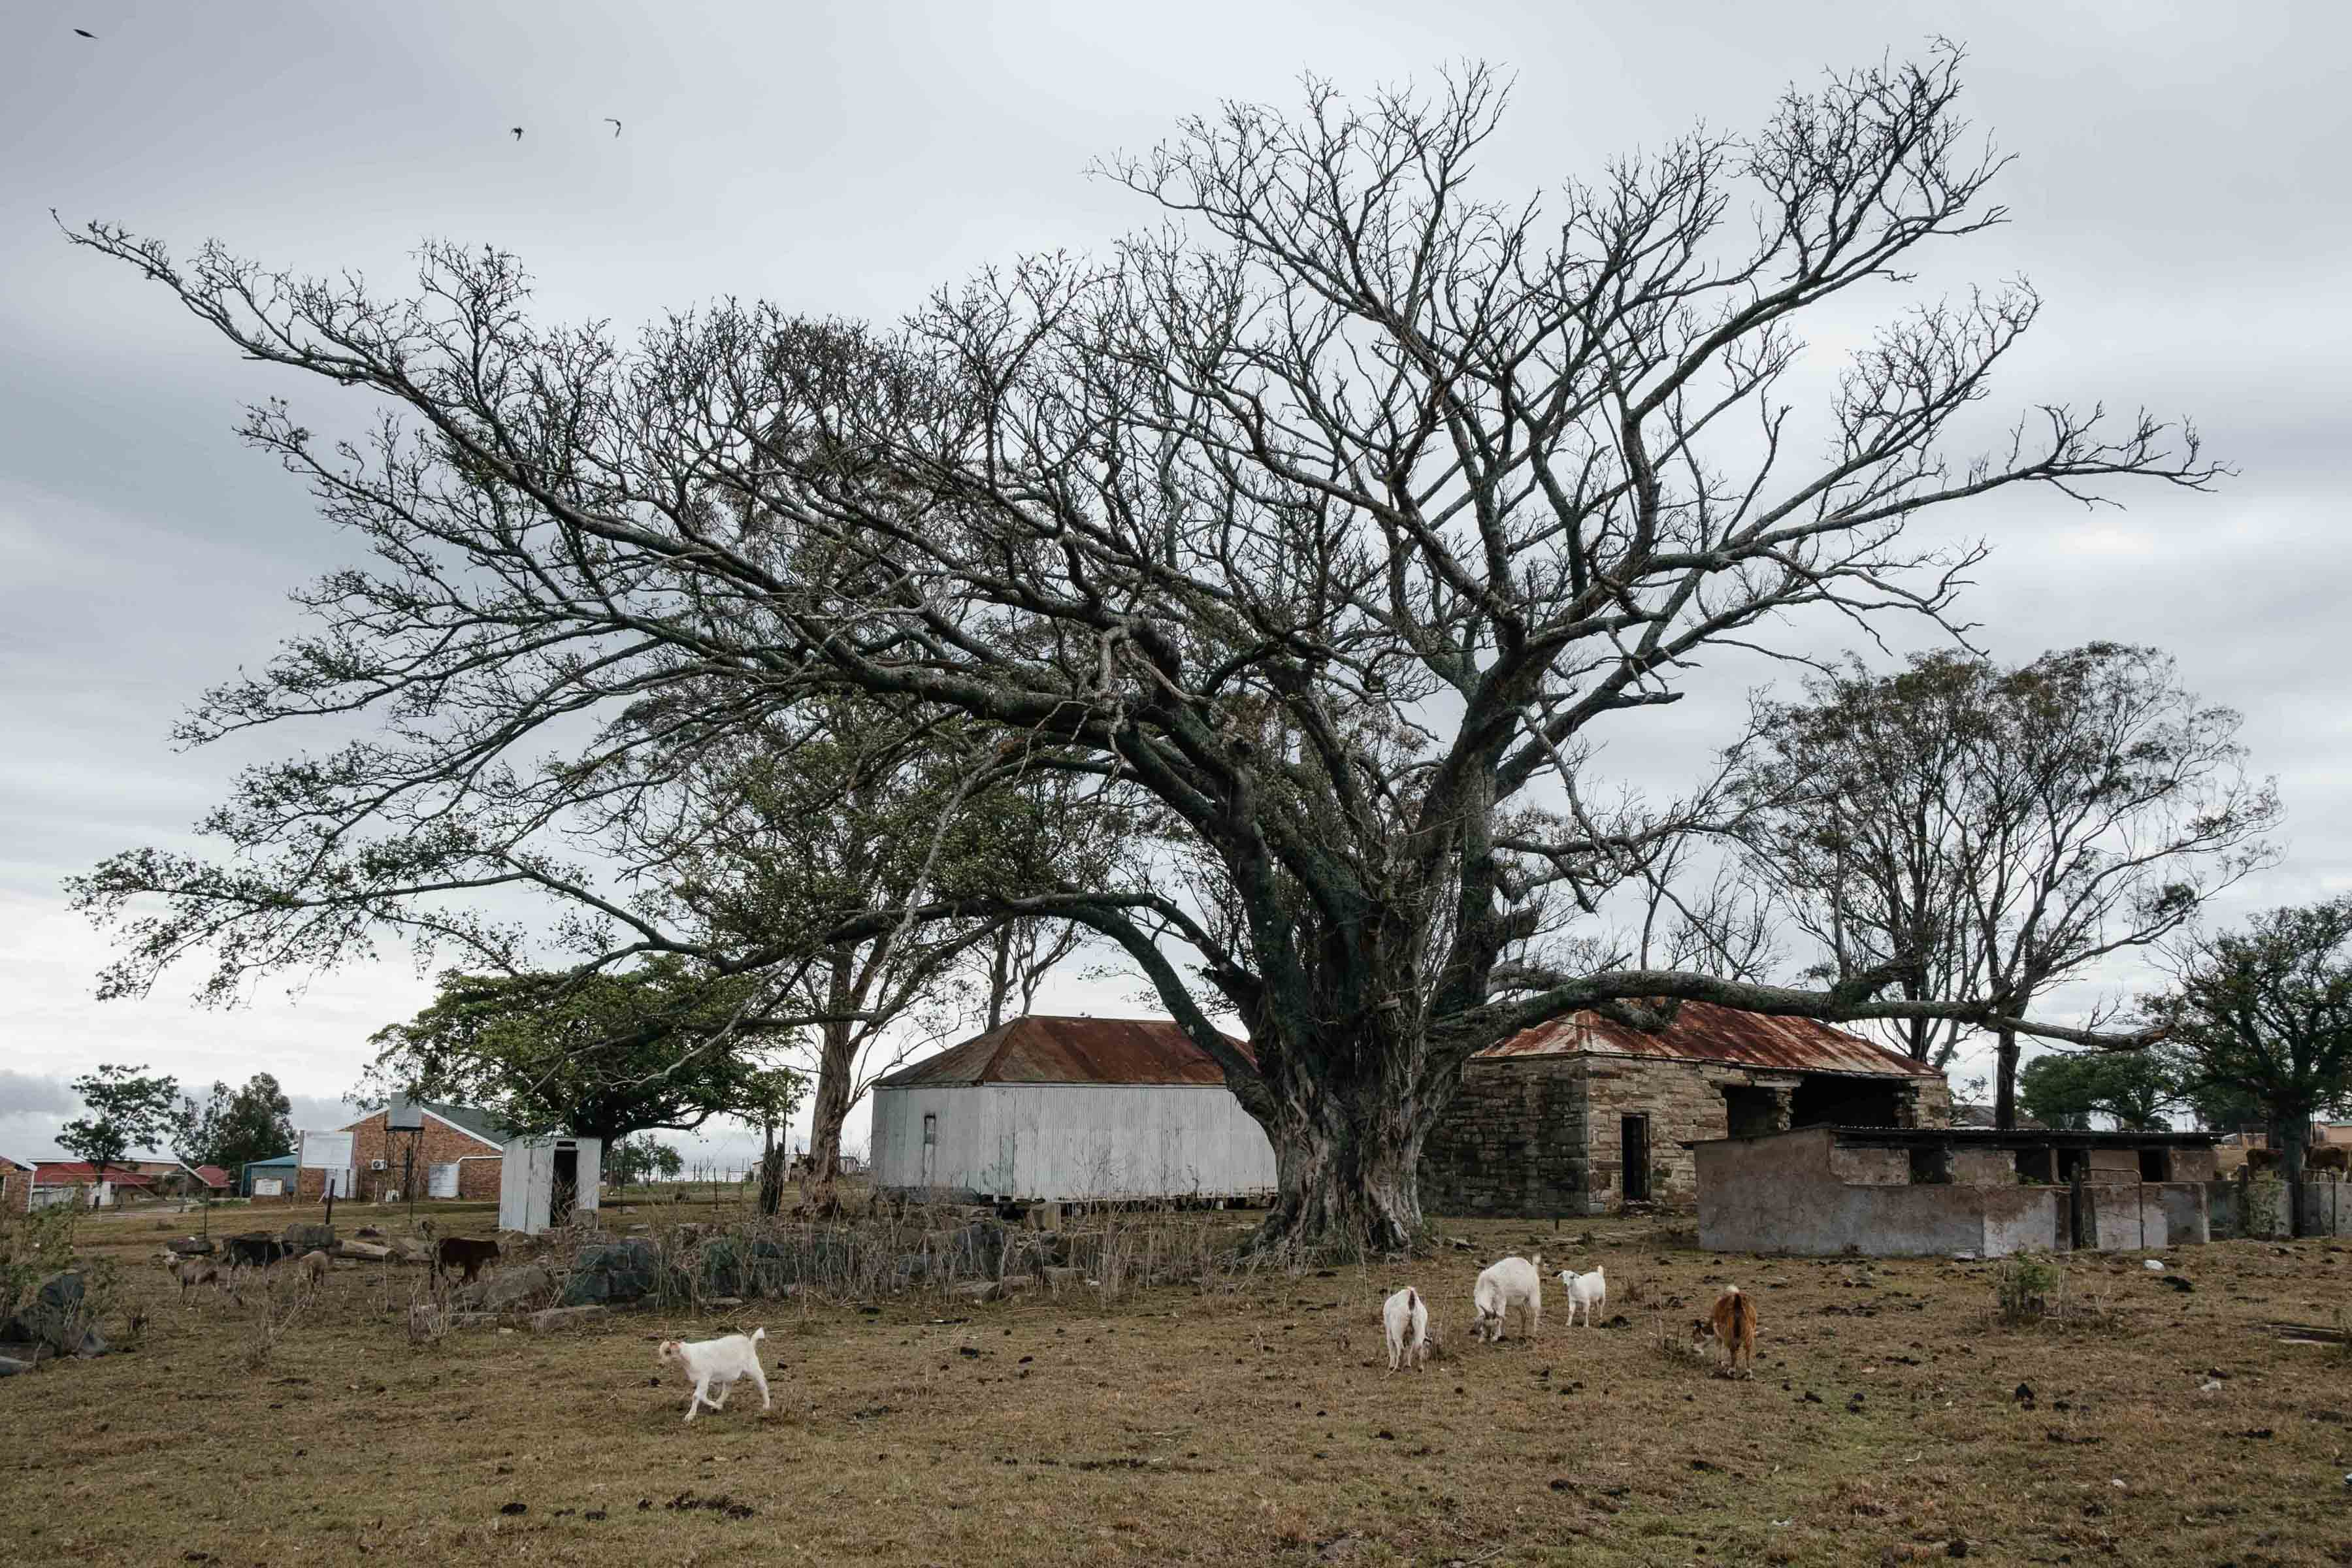 The death of deep-rooted trees such as this fig in Ngqwele village indicates that groundwater levels have dropped. Dry dams mean livestock also has to travel further to find drinking water, making the animals vulnerable to theft.